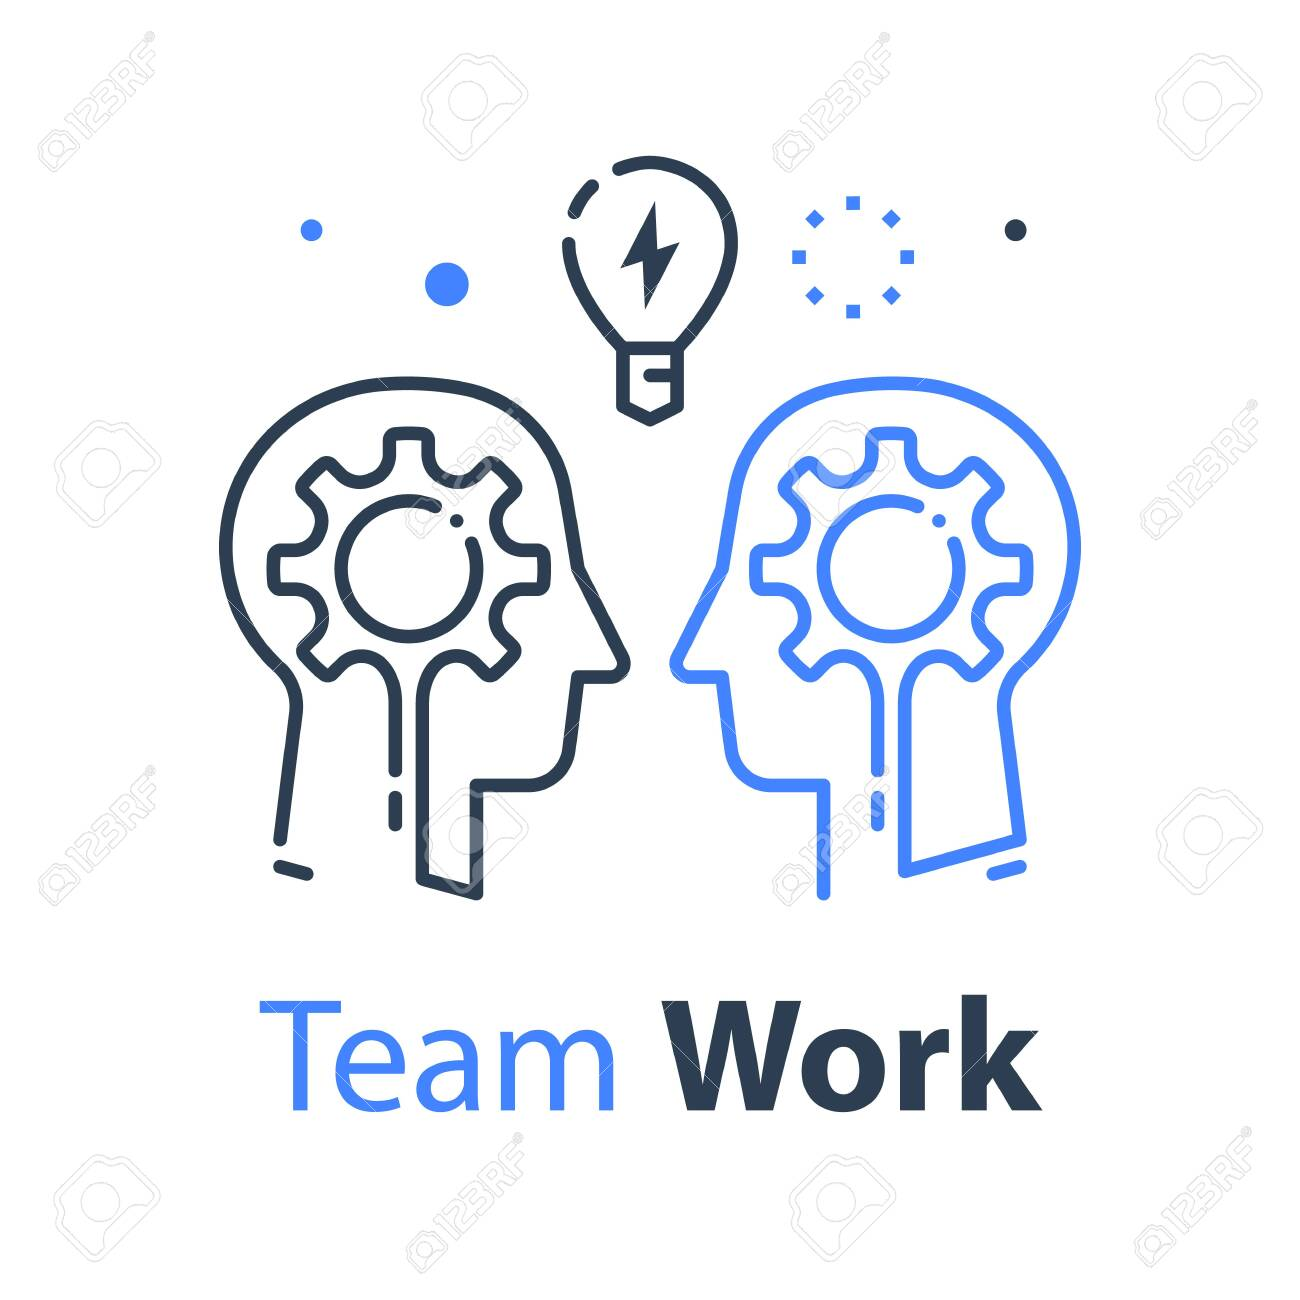 Team work, communication or negotiation, common ground, mutual understanding, creative solution, think outside the box concept, business training or workshop, vector line illustration - 133868435